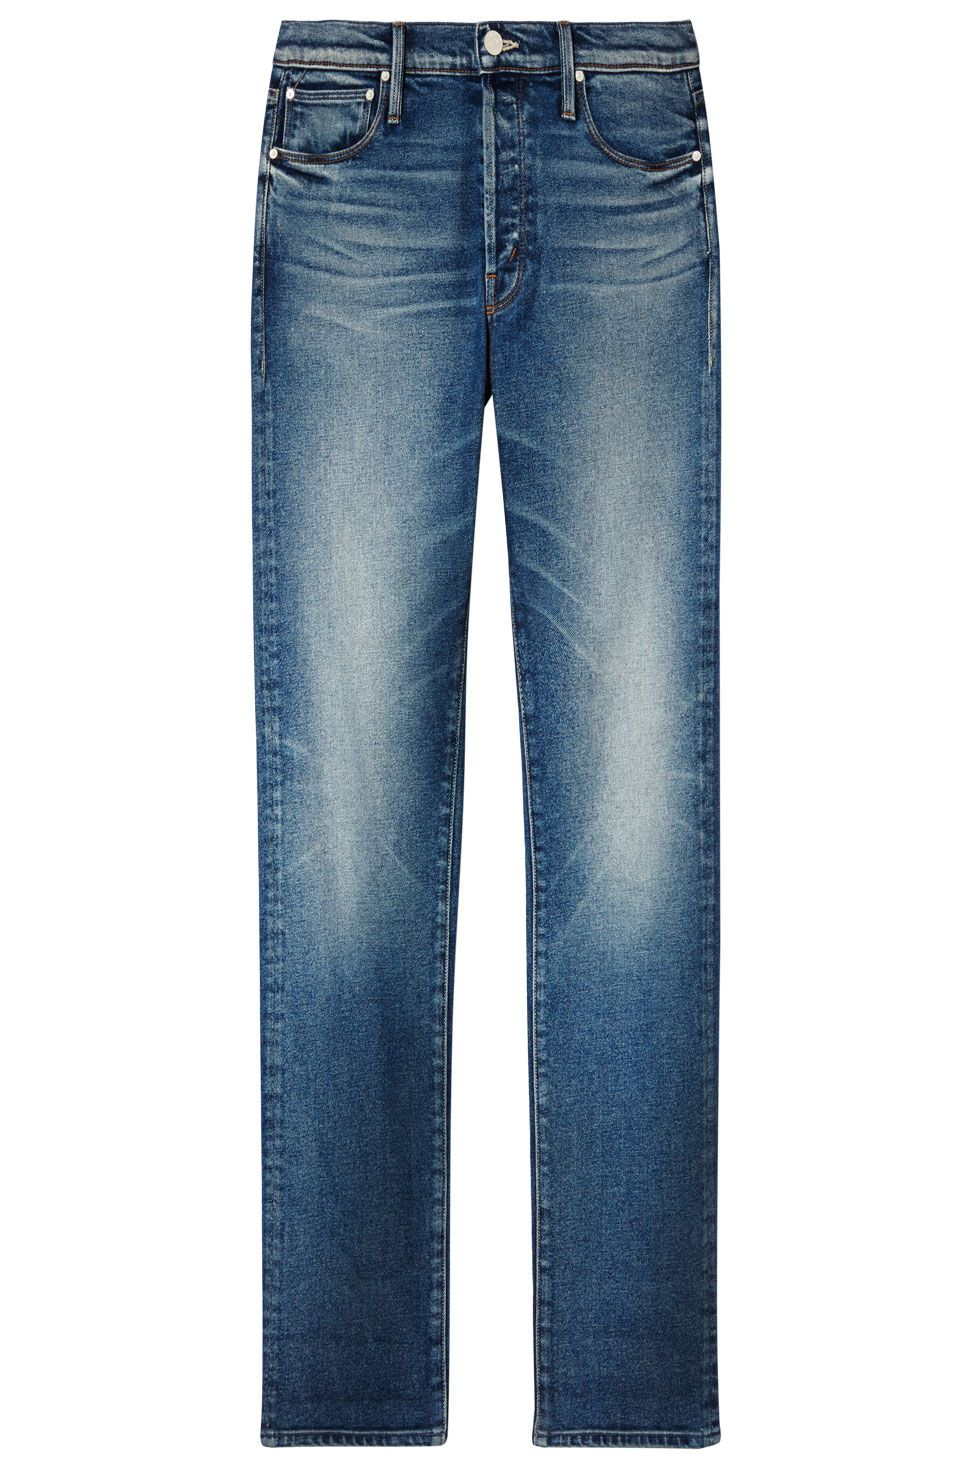 "<p>""Jeans are my go-to."" <strong>Mother Denim</strong> jeans, $245, <a href=""http://www.motherdenim.com/"" target=""_blank"">motherdenim.com</a>.</p>"